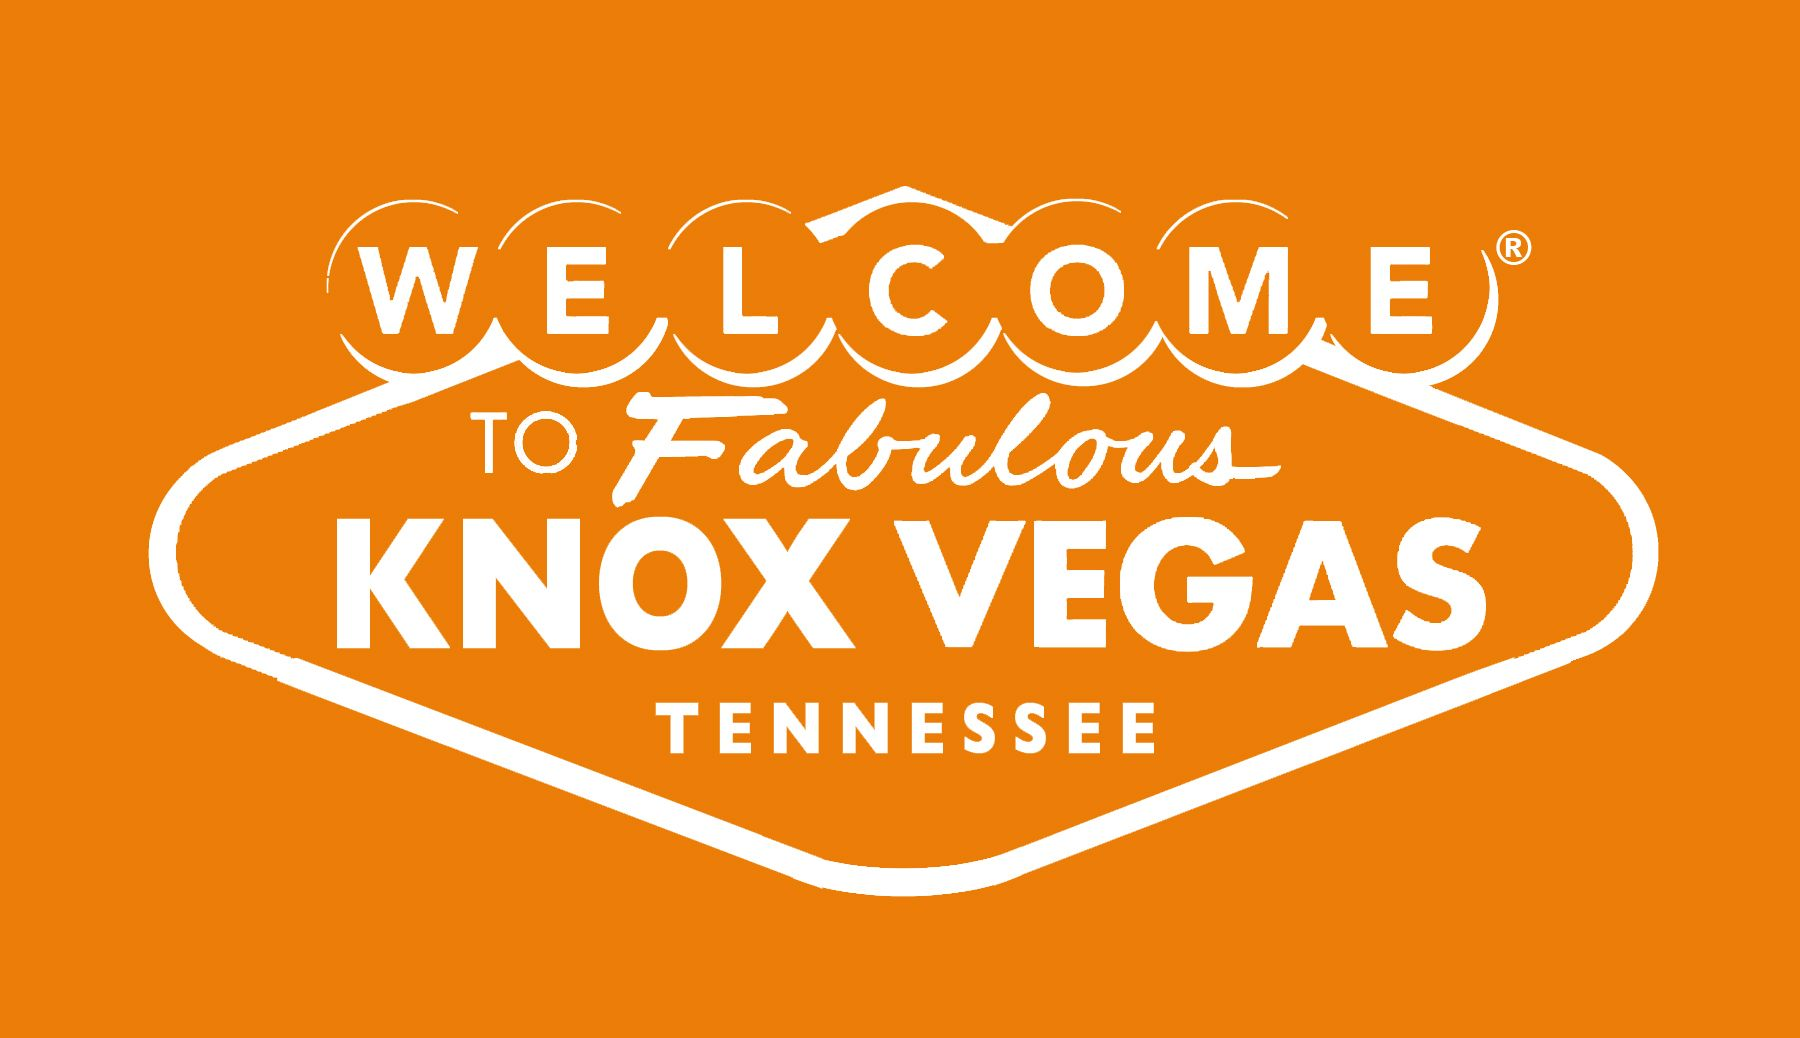 KnoxVegas, here we come! The 52nd Newk's Express Cafe will be at 135 Cedar Bluff RD NE in Fabulous Knoxville, Tennessee!